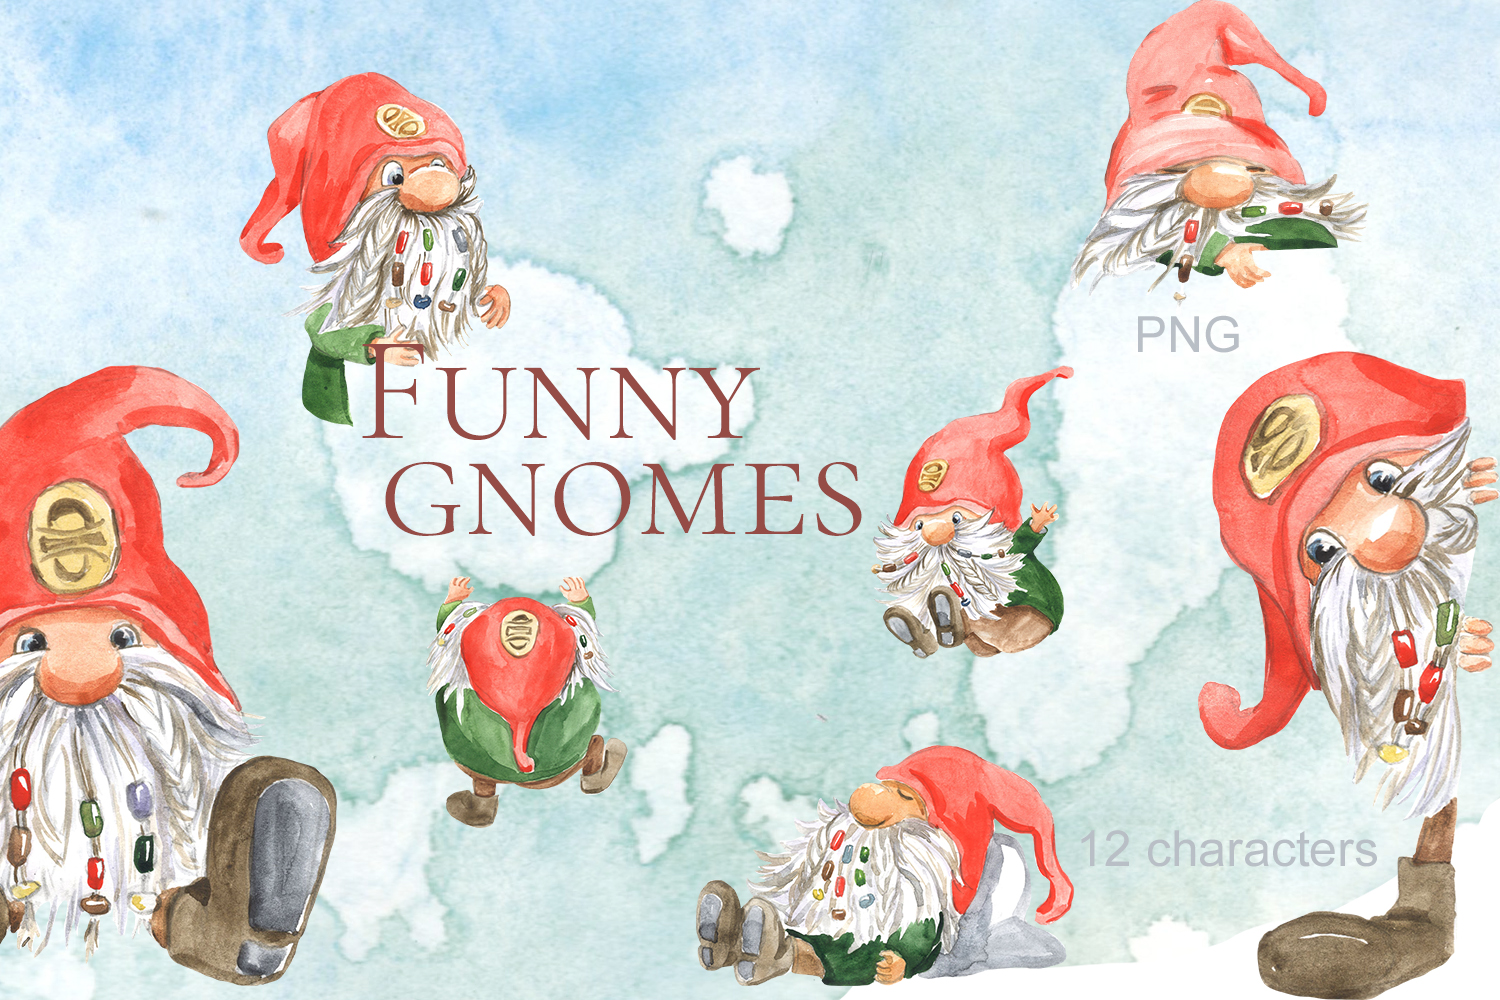 Download Free Funny Gnomes Watercolor Graphic By Laffresco04 Creative Fabrica for Cricut Explore, Silhouette and other cutting machines.